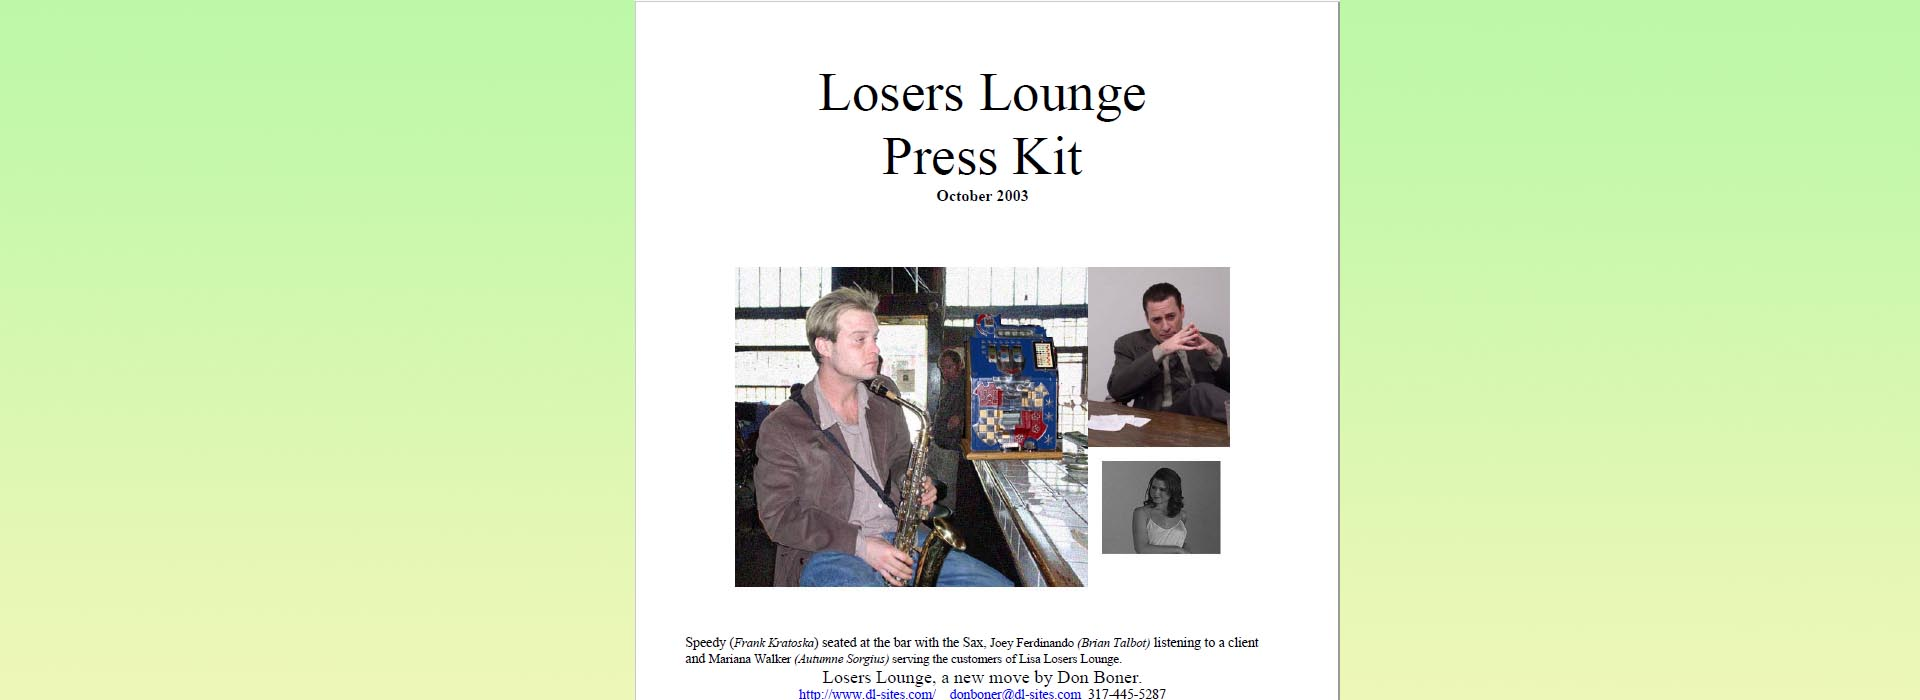 Losers Lounge Press Kit